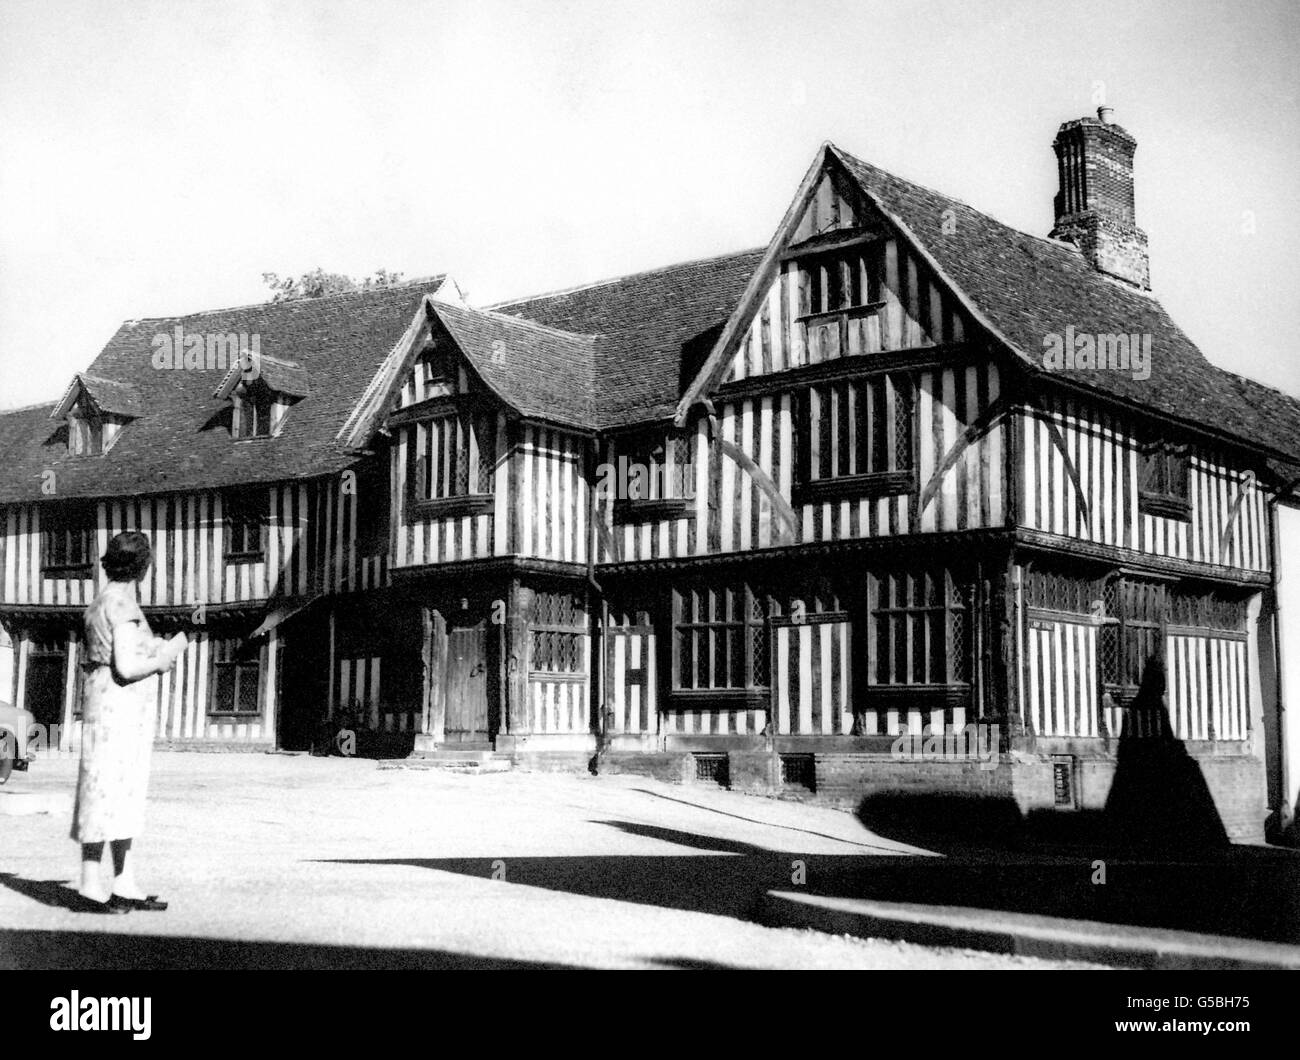 Buildings and Landmarks - Lavenham Guildhall - Suffolk - Stock Image